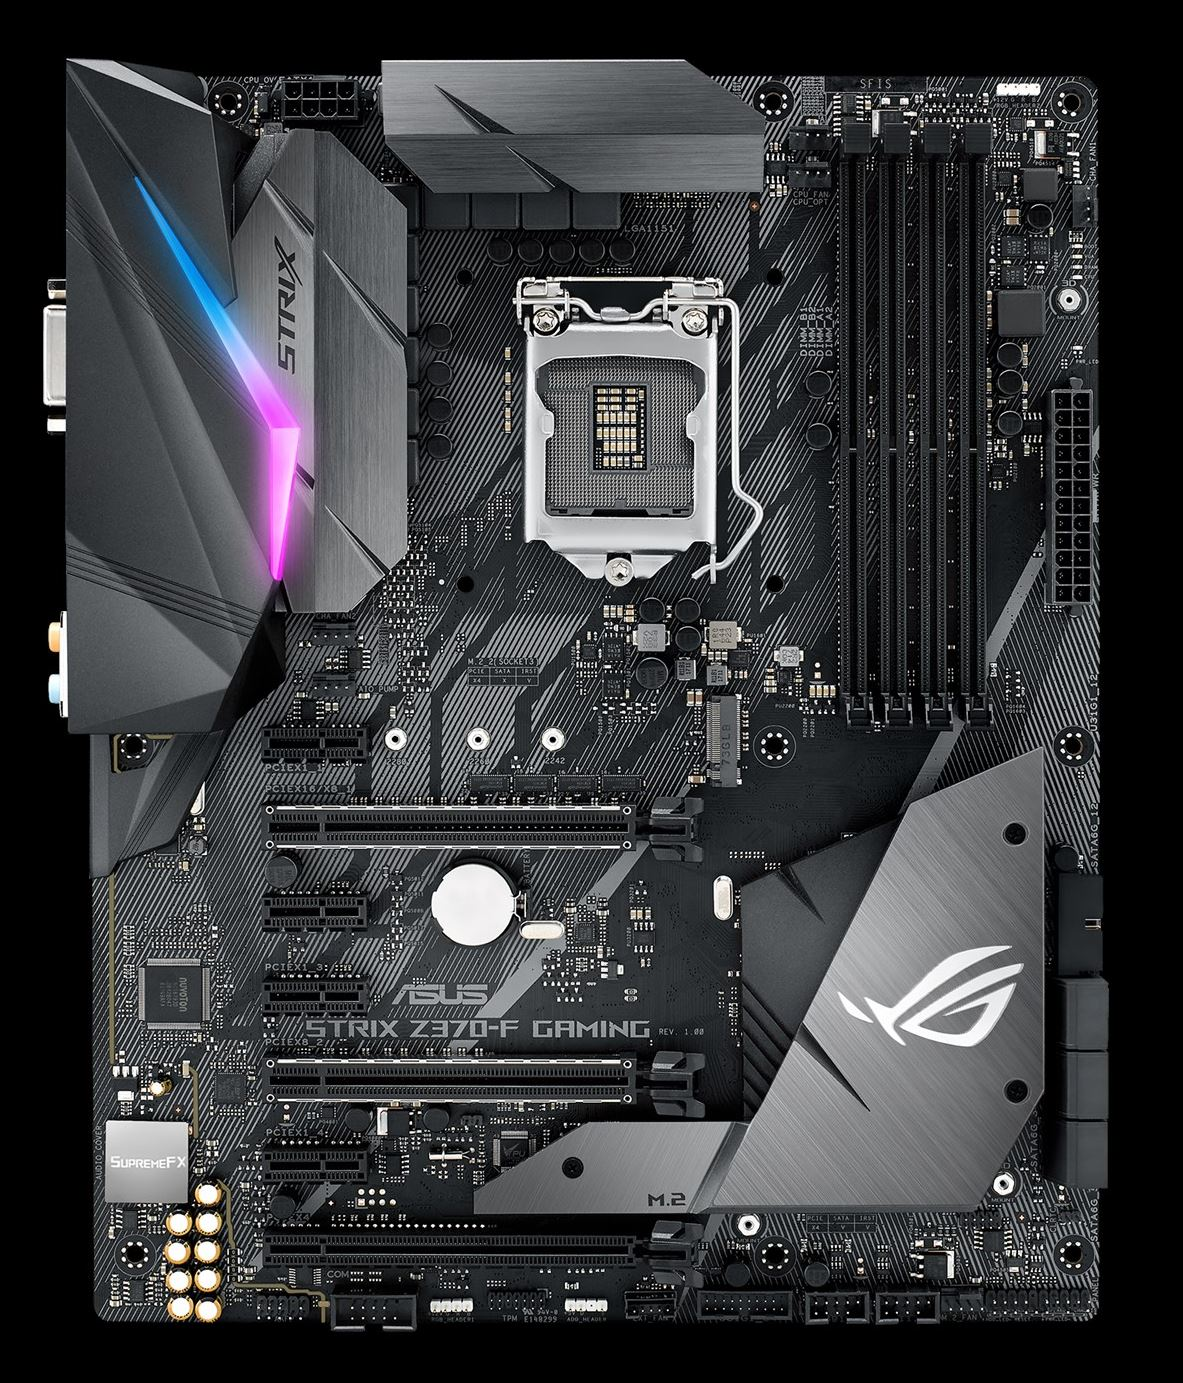 The ASUS ROG Strix Z370-F Gaming Review: A $200 Motherboard